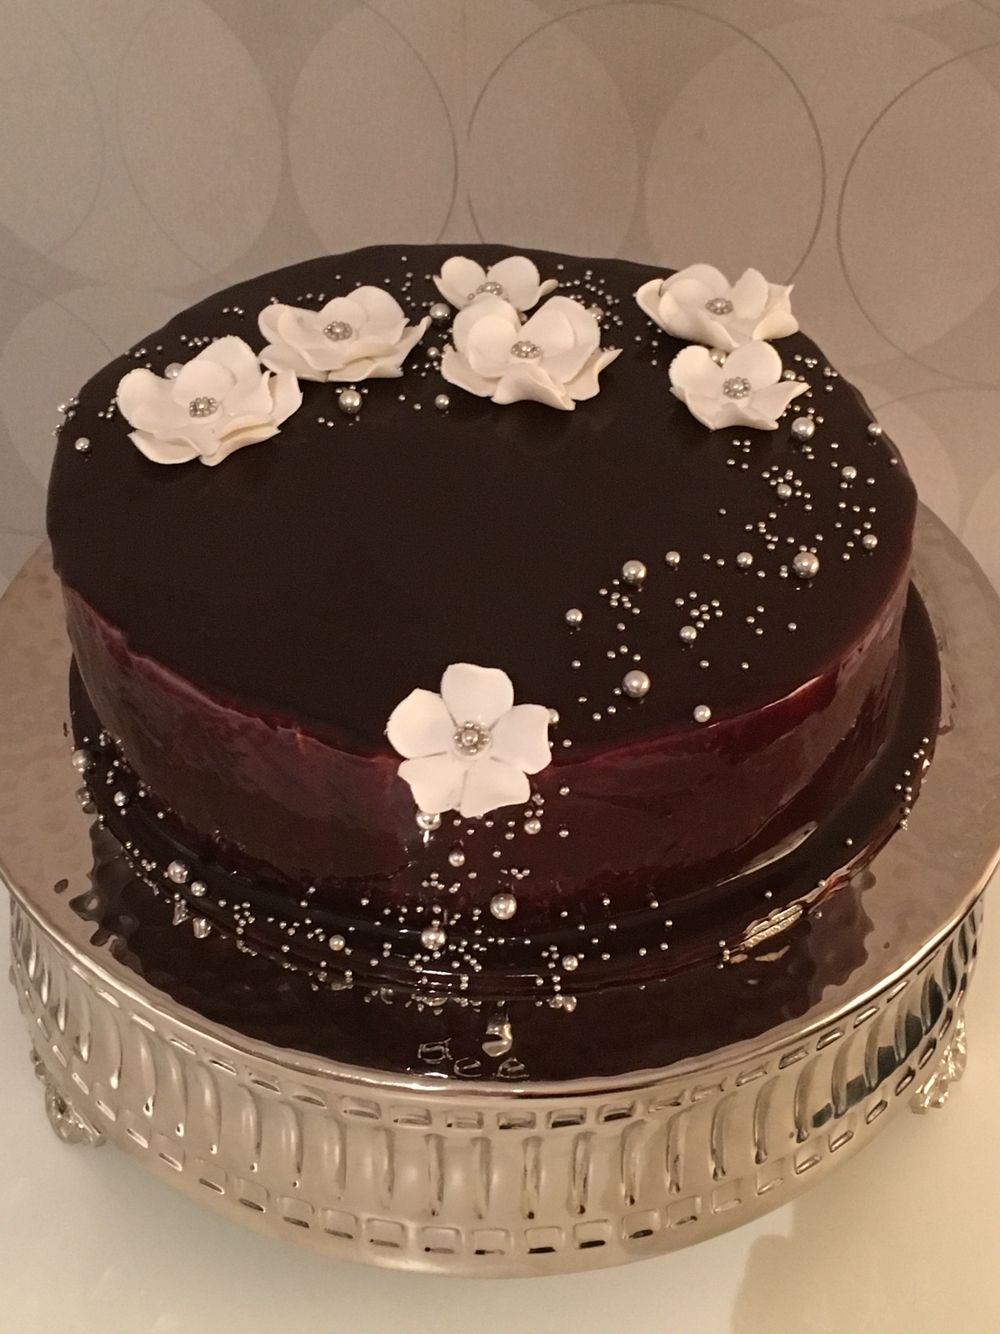 Sponge cake covered by a chocolate mirror glaze. I was so surprised how easy it was and how beautiful it turned out